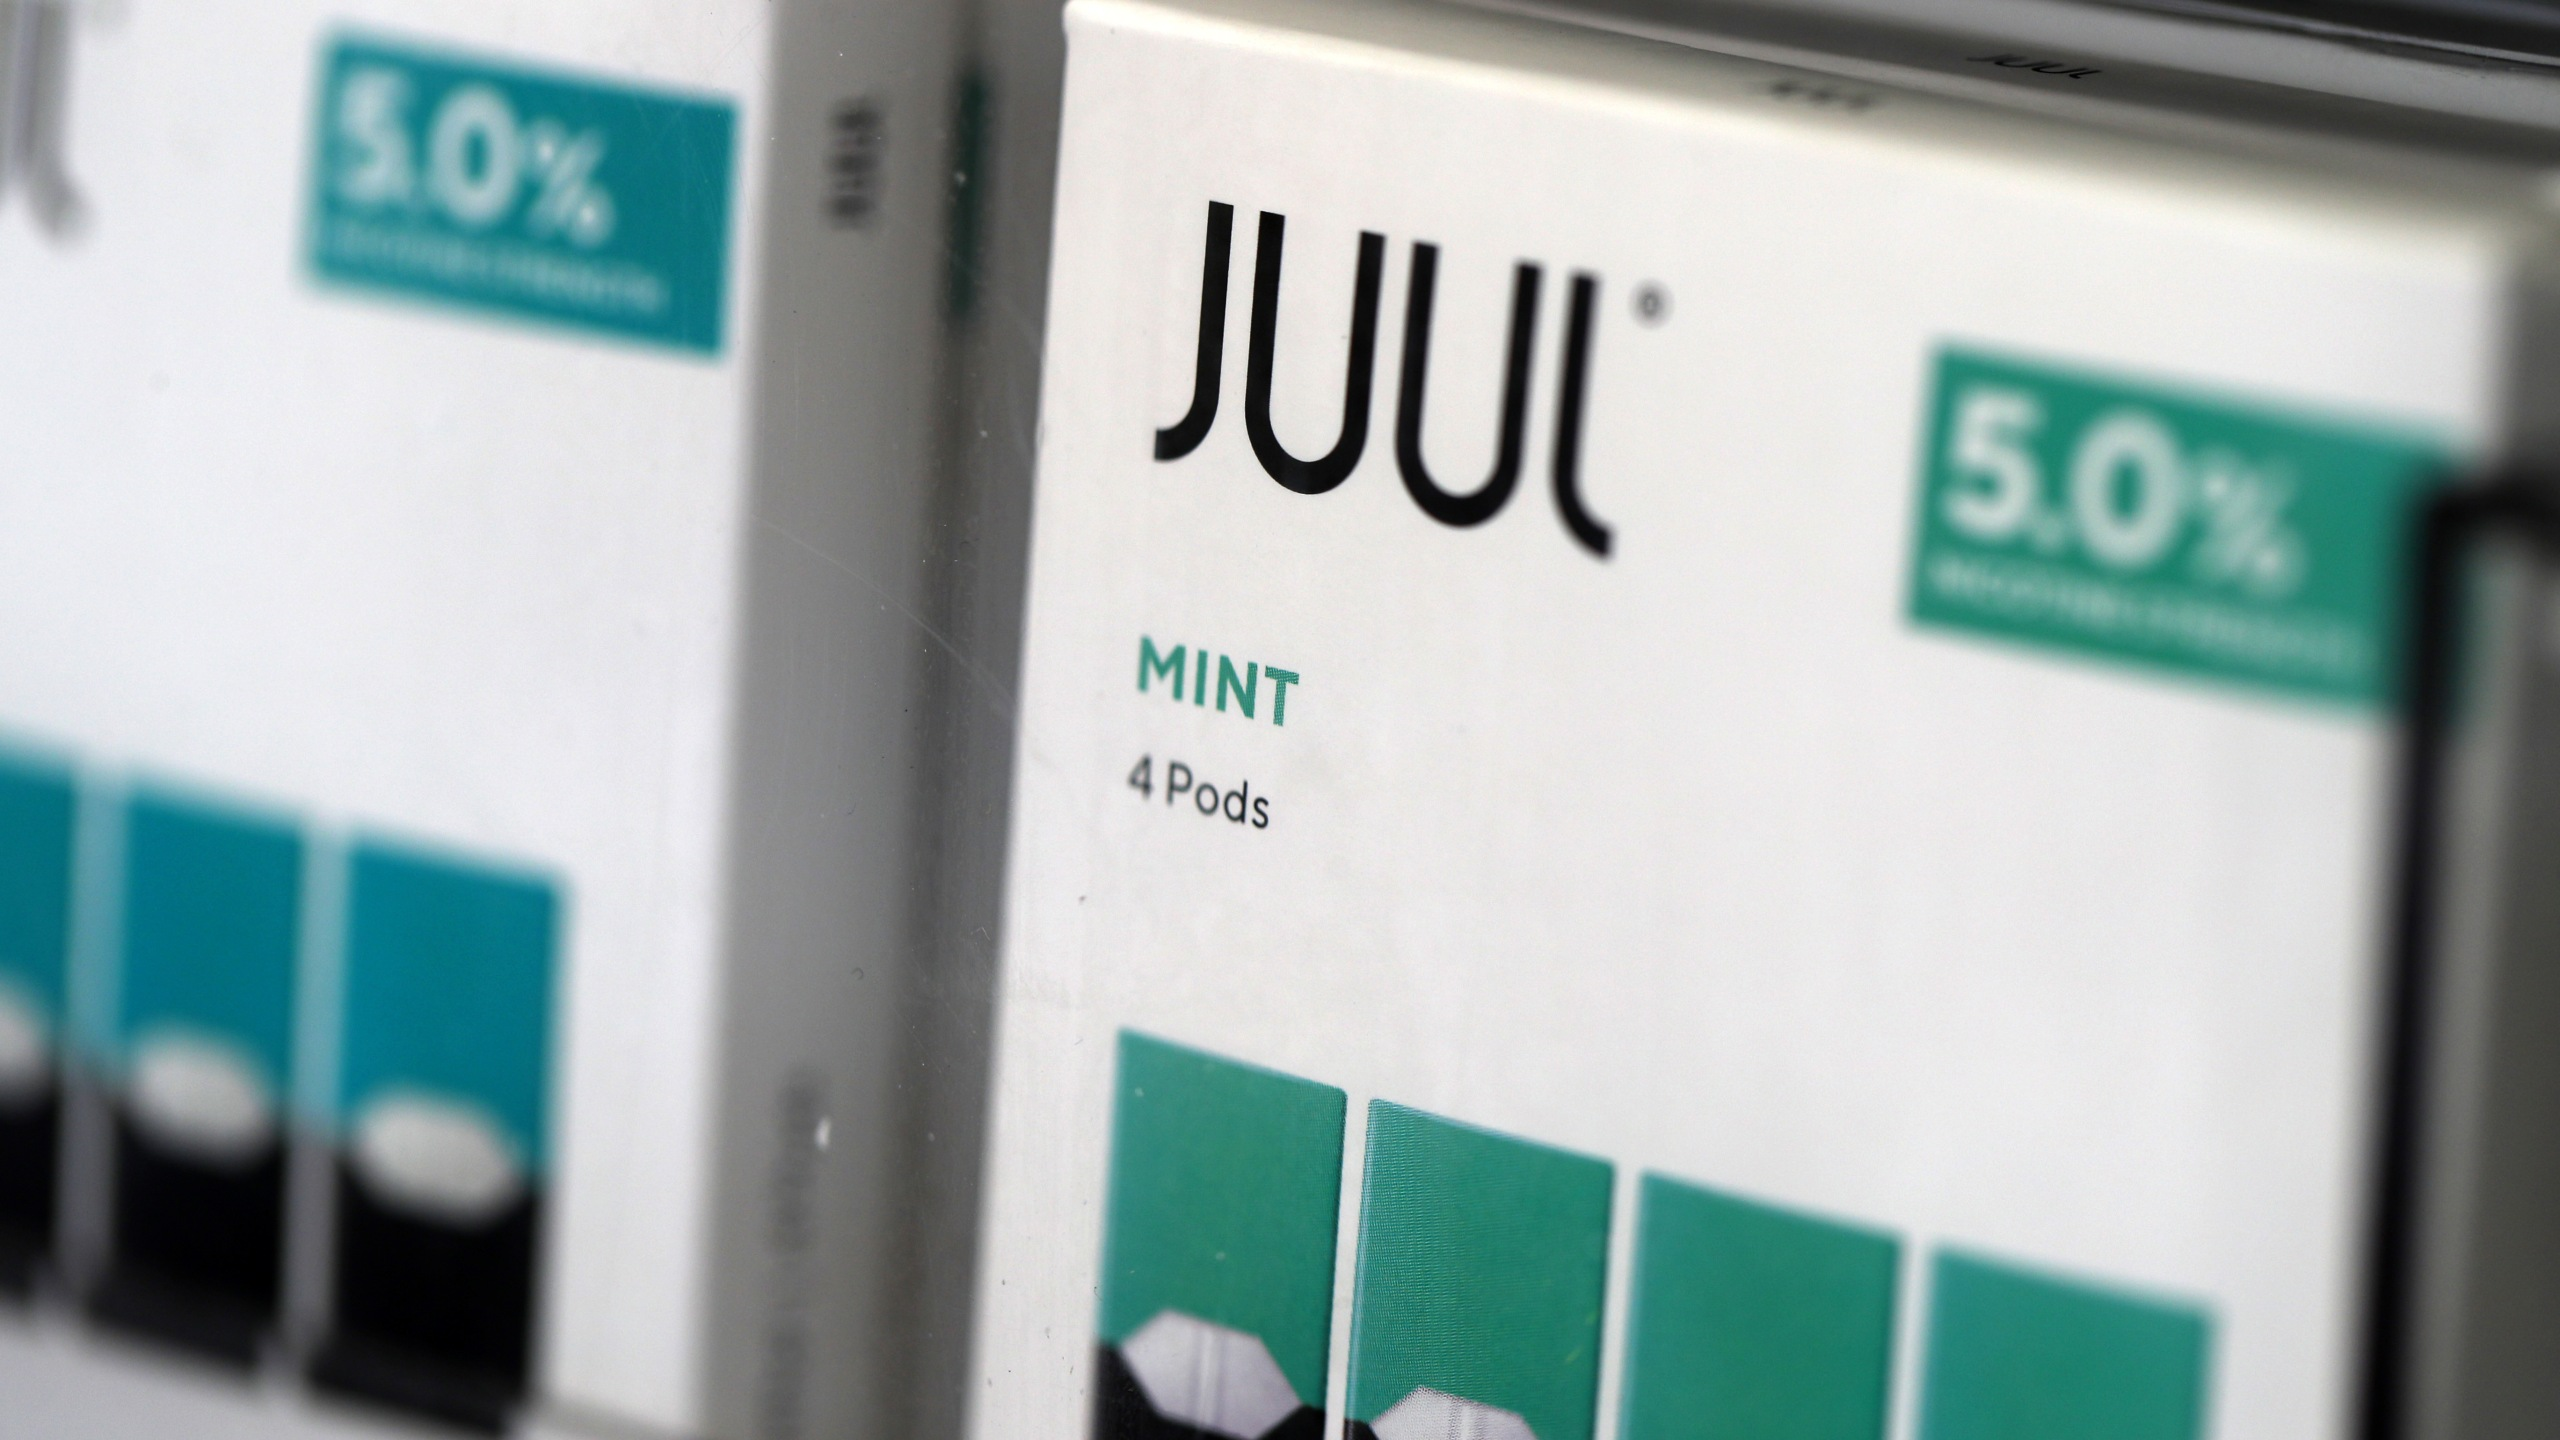 Packages of Juul mint flavored e-cigarettes are displayed at a smoke shop in San Rafael on Nov. 7, 2019. (Credit: Justin Sullivan / Getty Images)